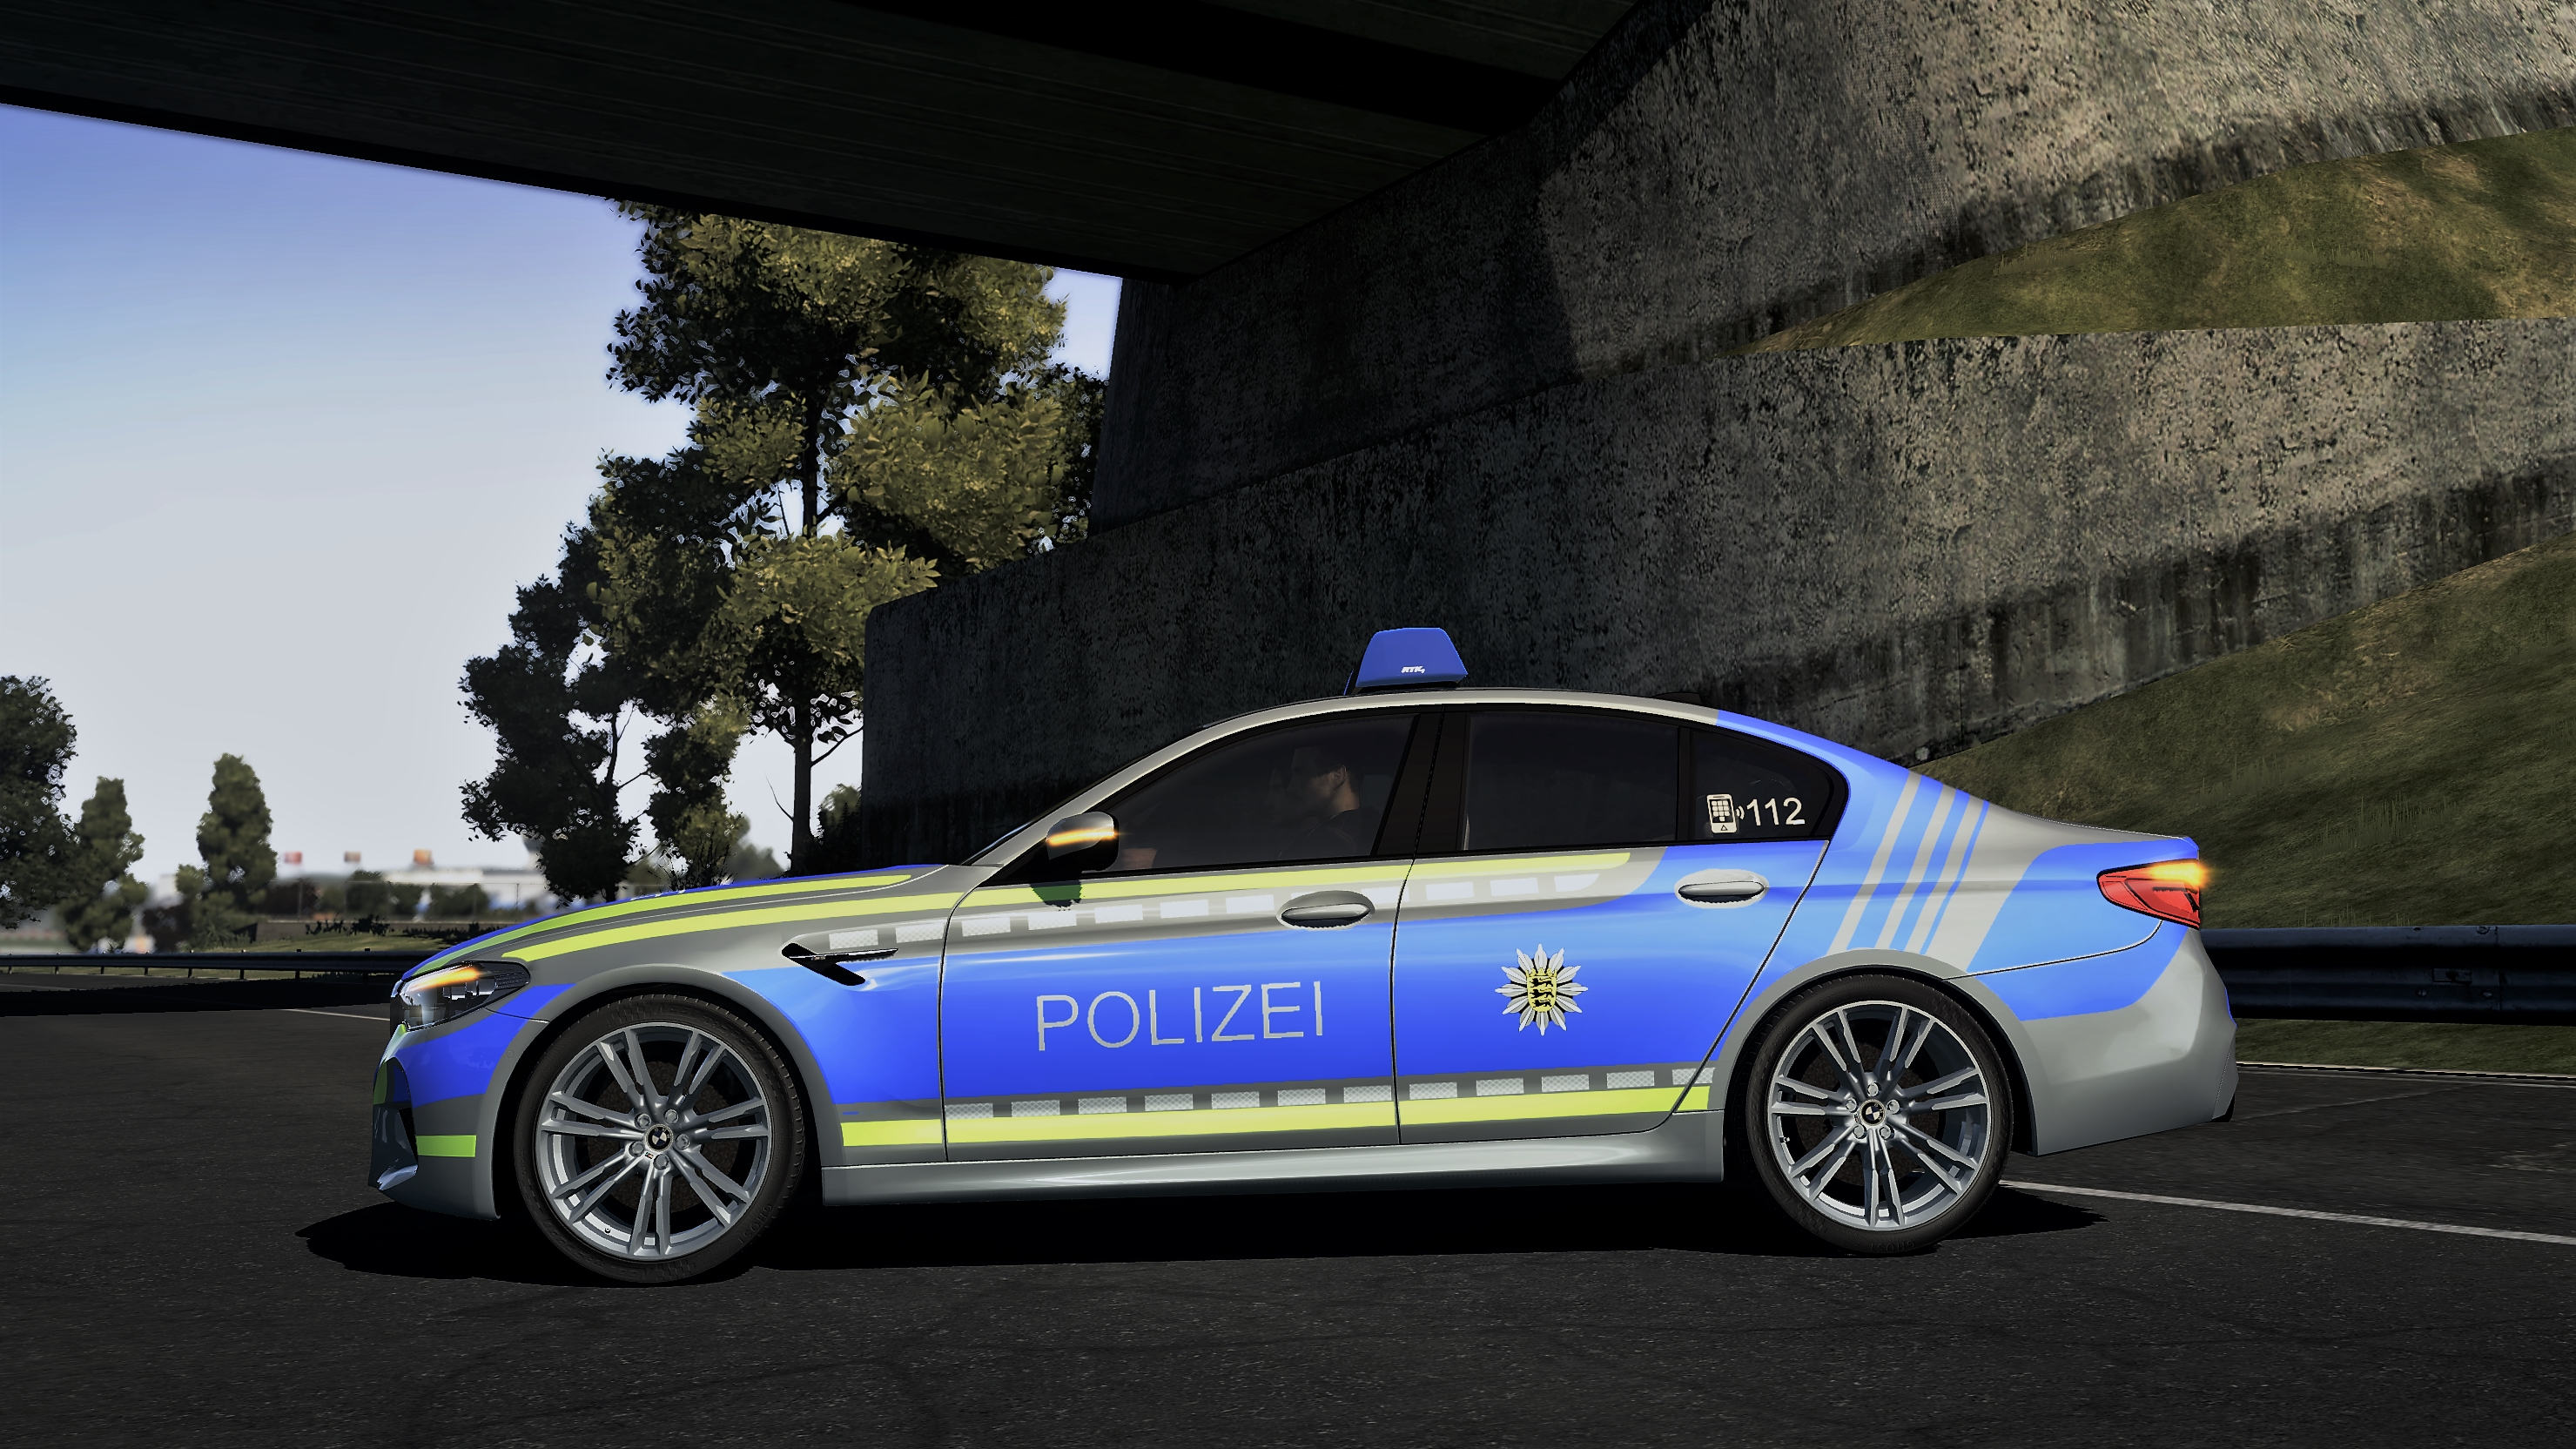 https://abload.de/img/bmwm5polizei02_dtrsa.jpg